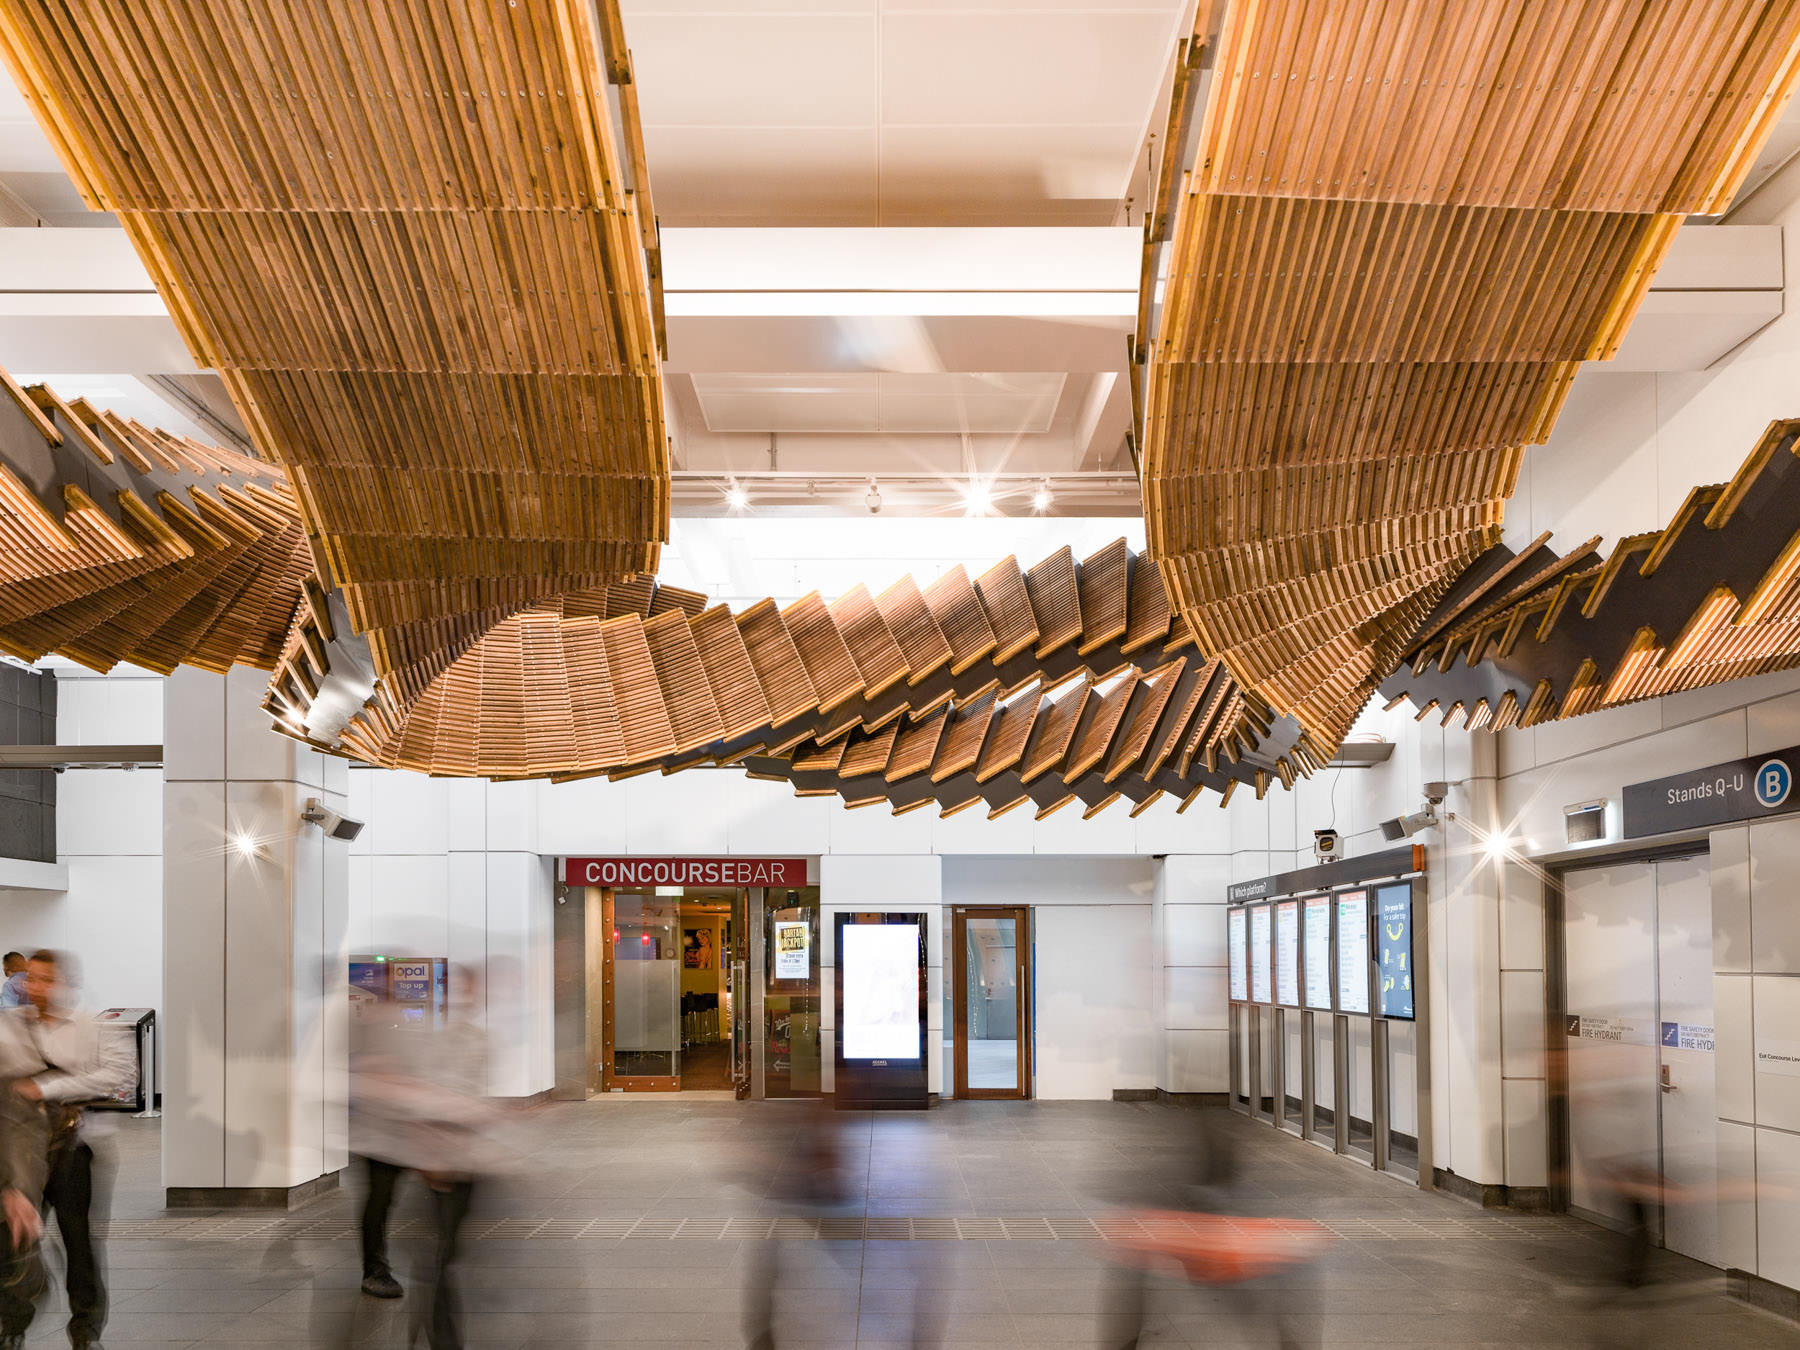 Sculptural Installation Made from Historic Wood Escalators in Sydney